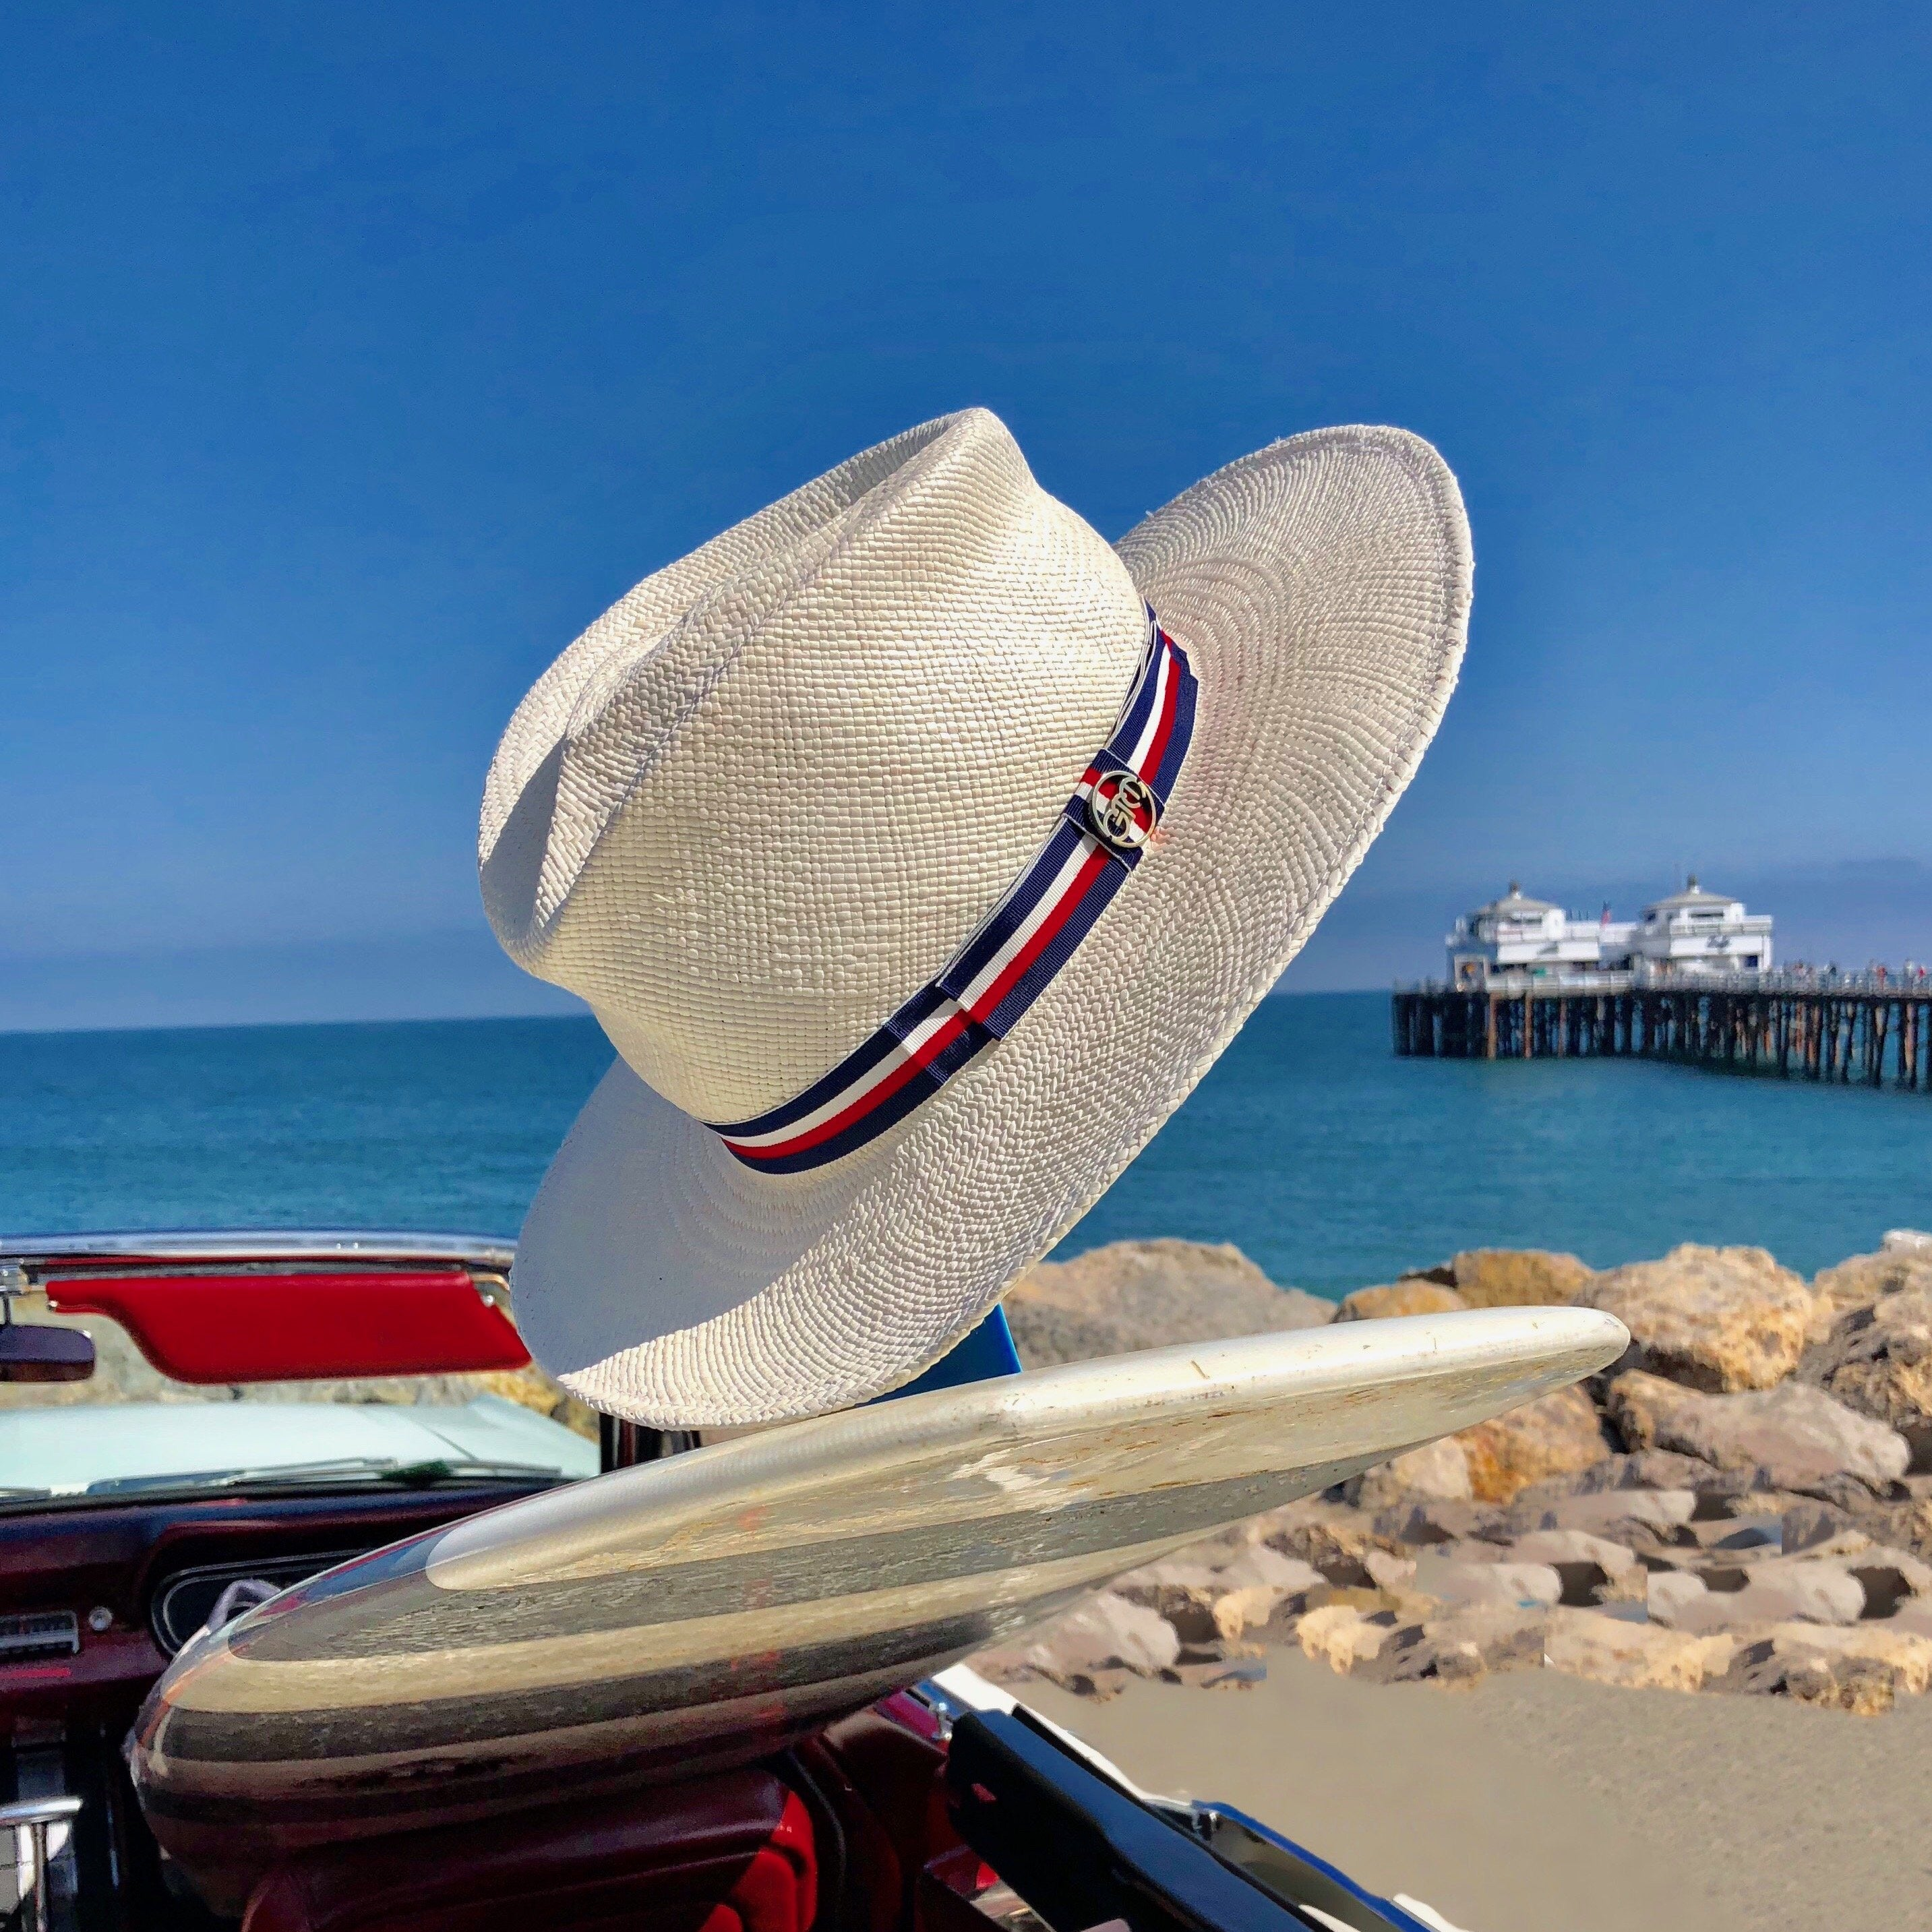 Gladys tamez Peck white hat with a red white and blue strip around the brim. 100% panama straw hat with striped grosgrain band  Measurements: Brim - 3""